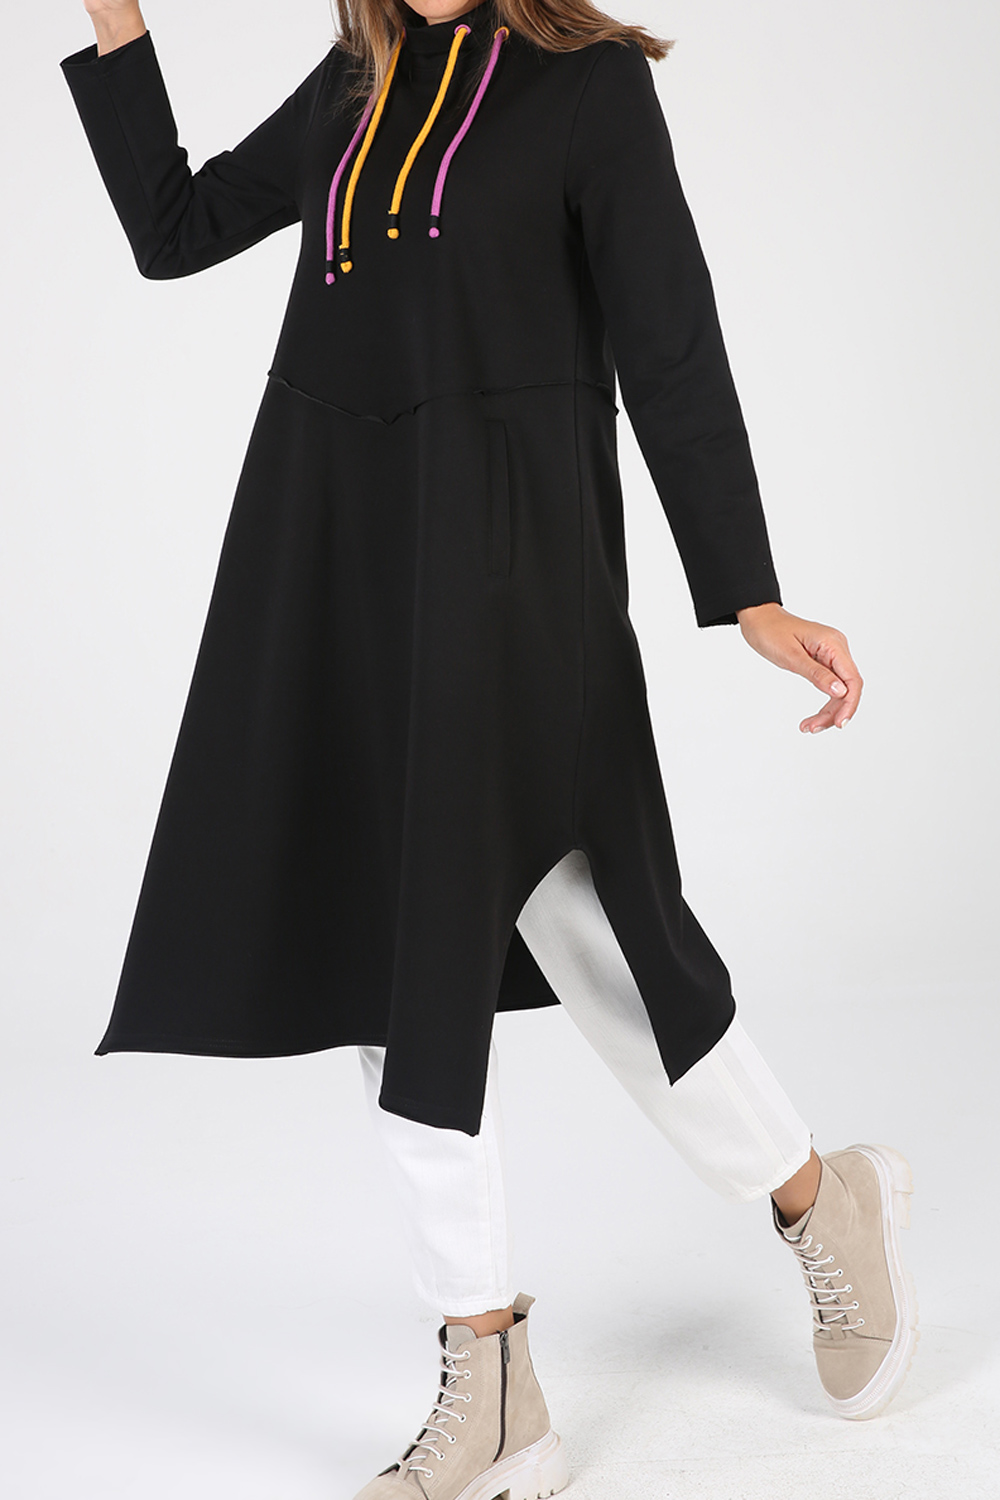 Lace Detailed Tunic With Pockets